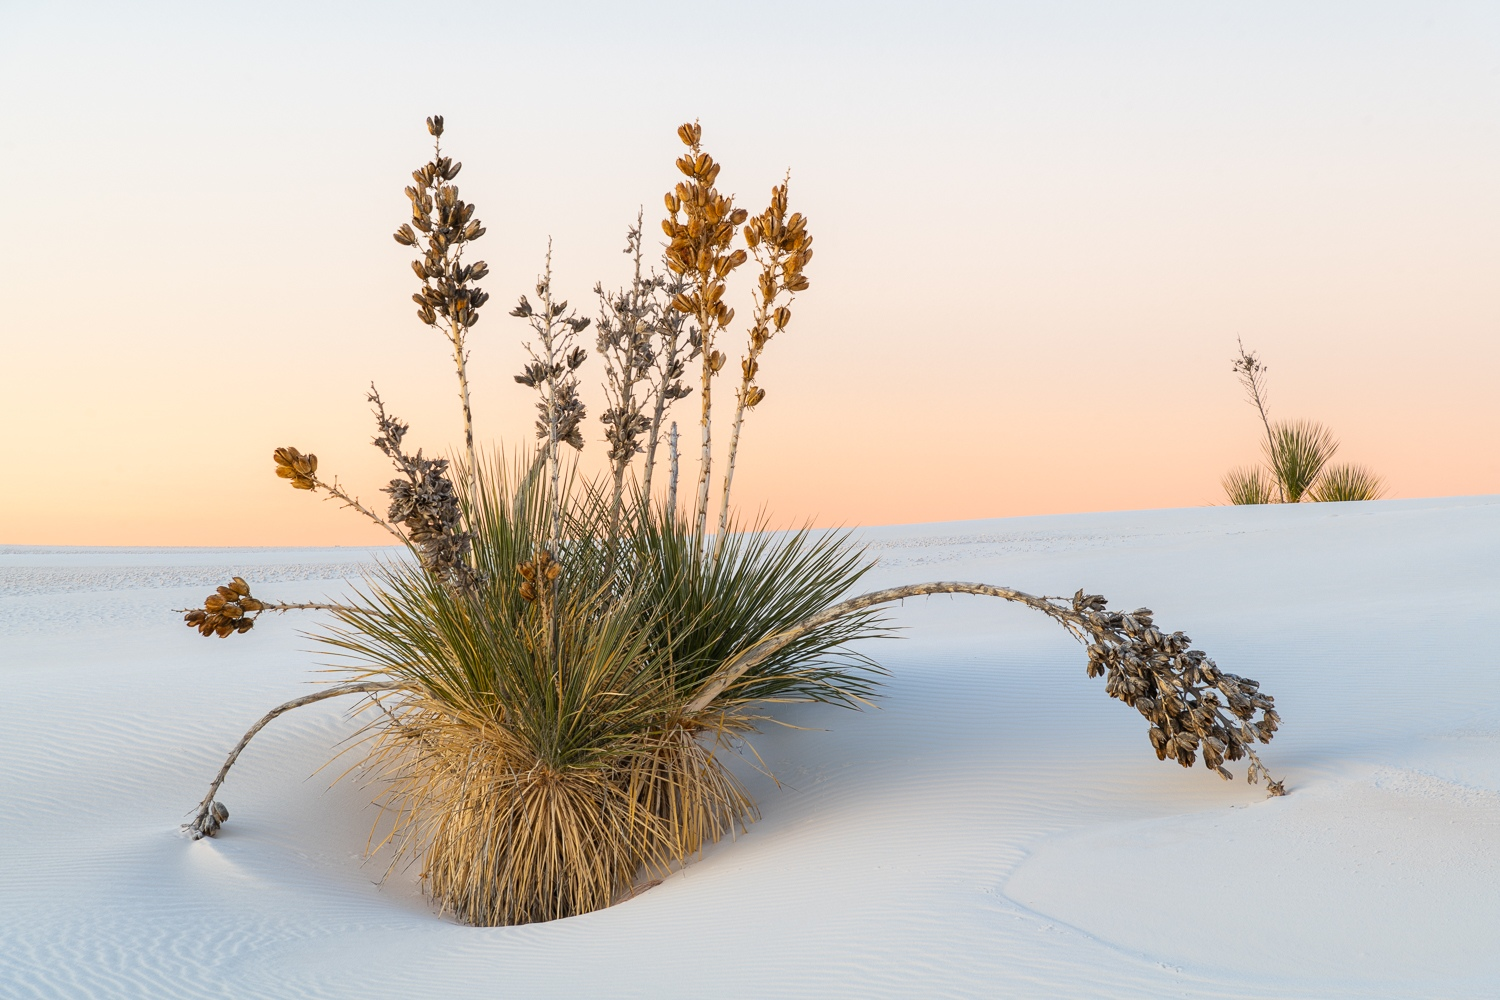 Soaptree yucca and gypsum dunes, White Sands National Park, New Mexico.